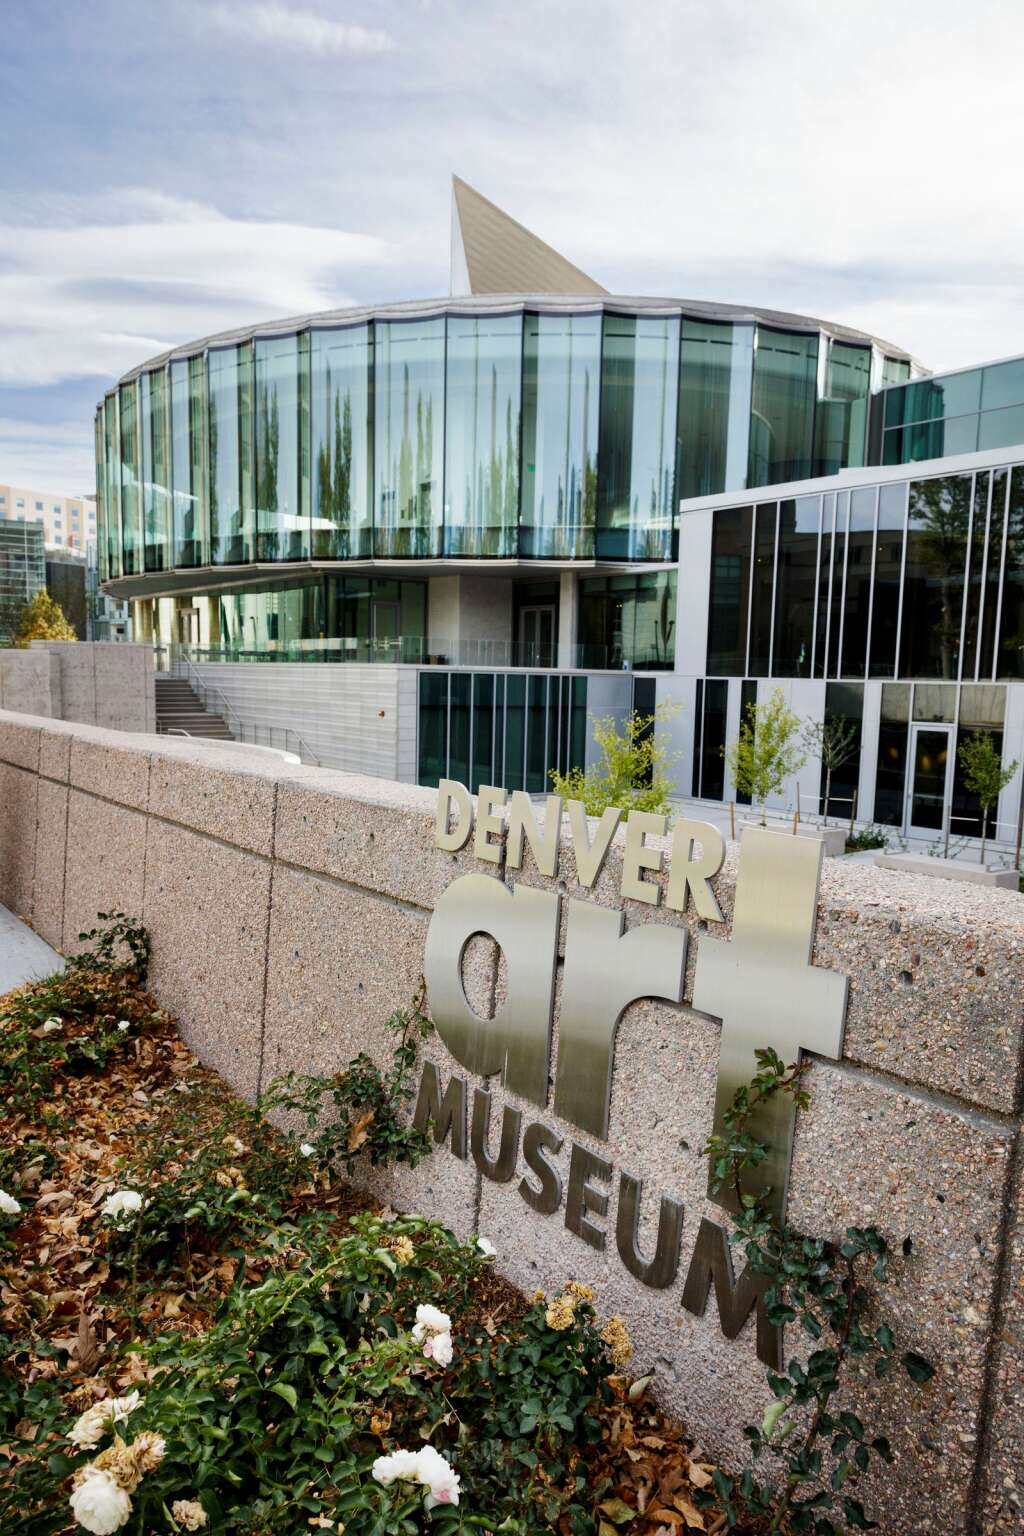 The expanded Denver Art Museum will reopen to the public on Oct. 24. (James Florio/Courtesy photo)